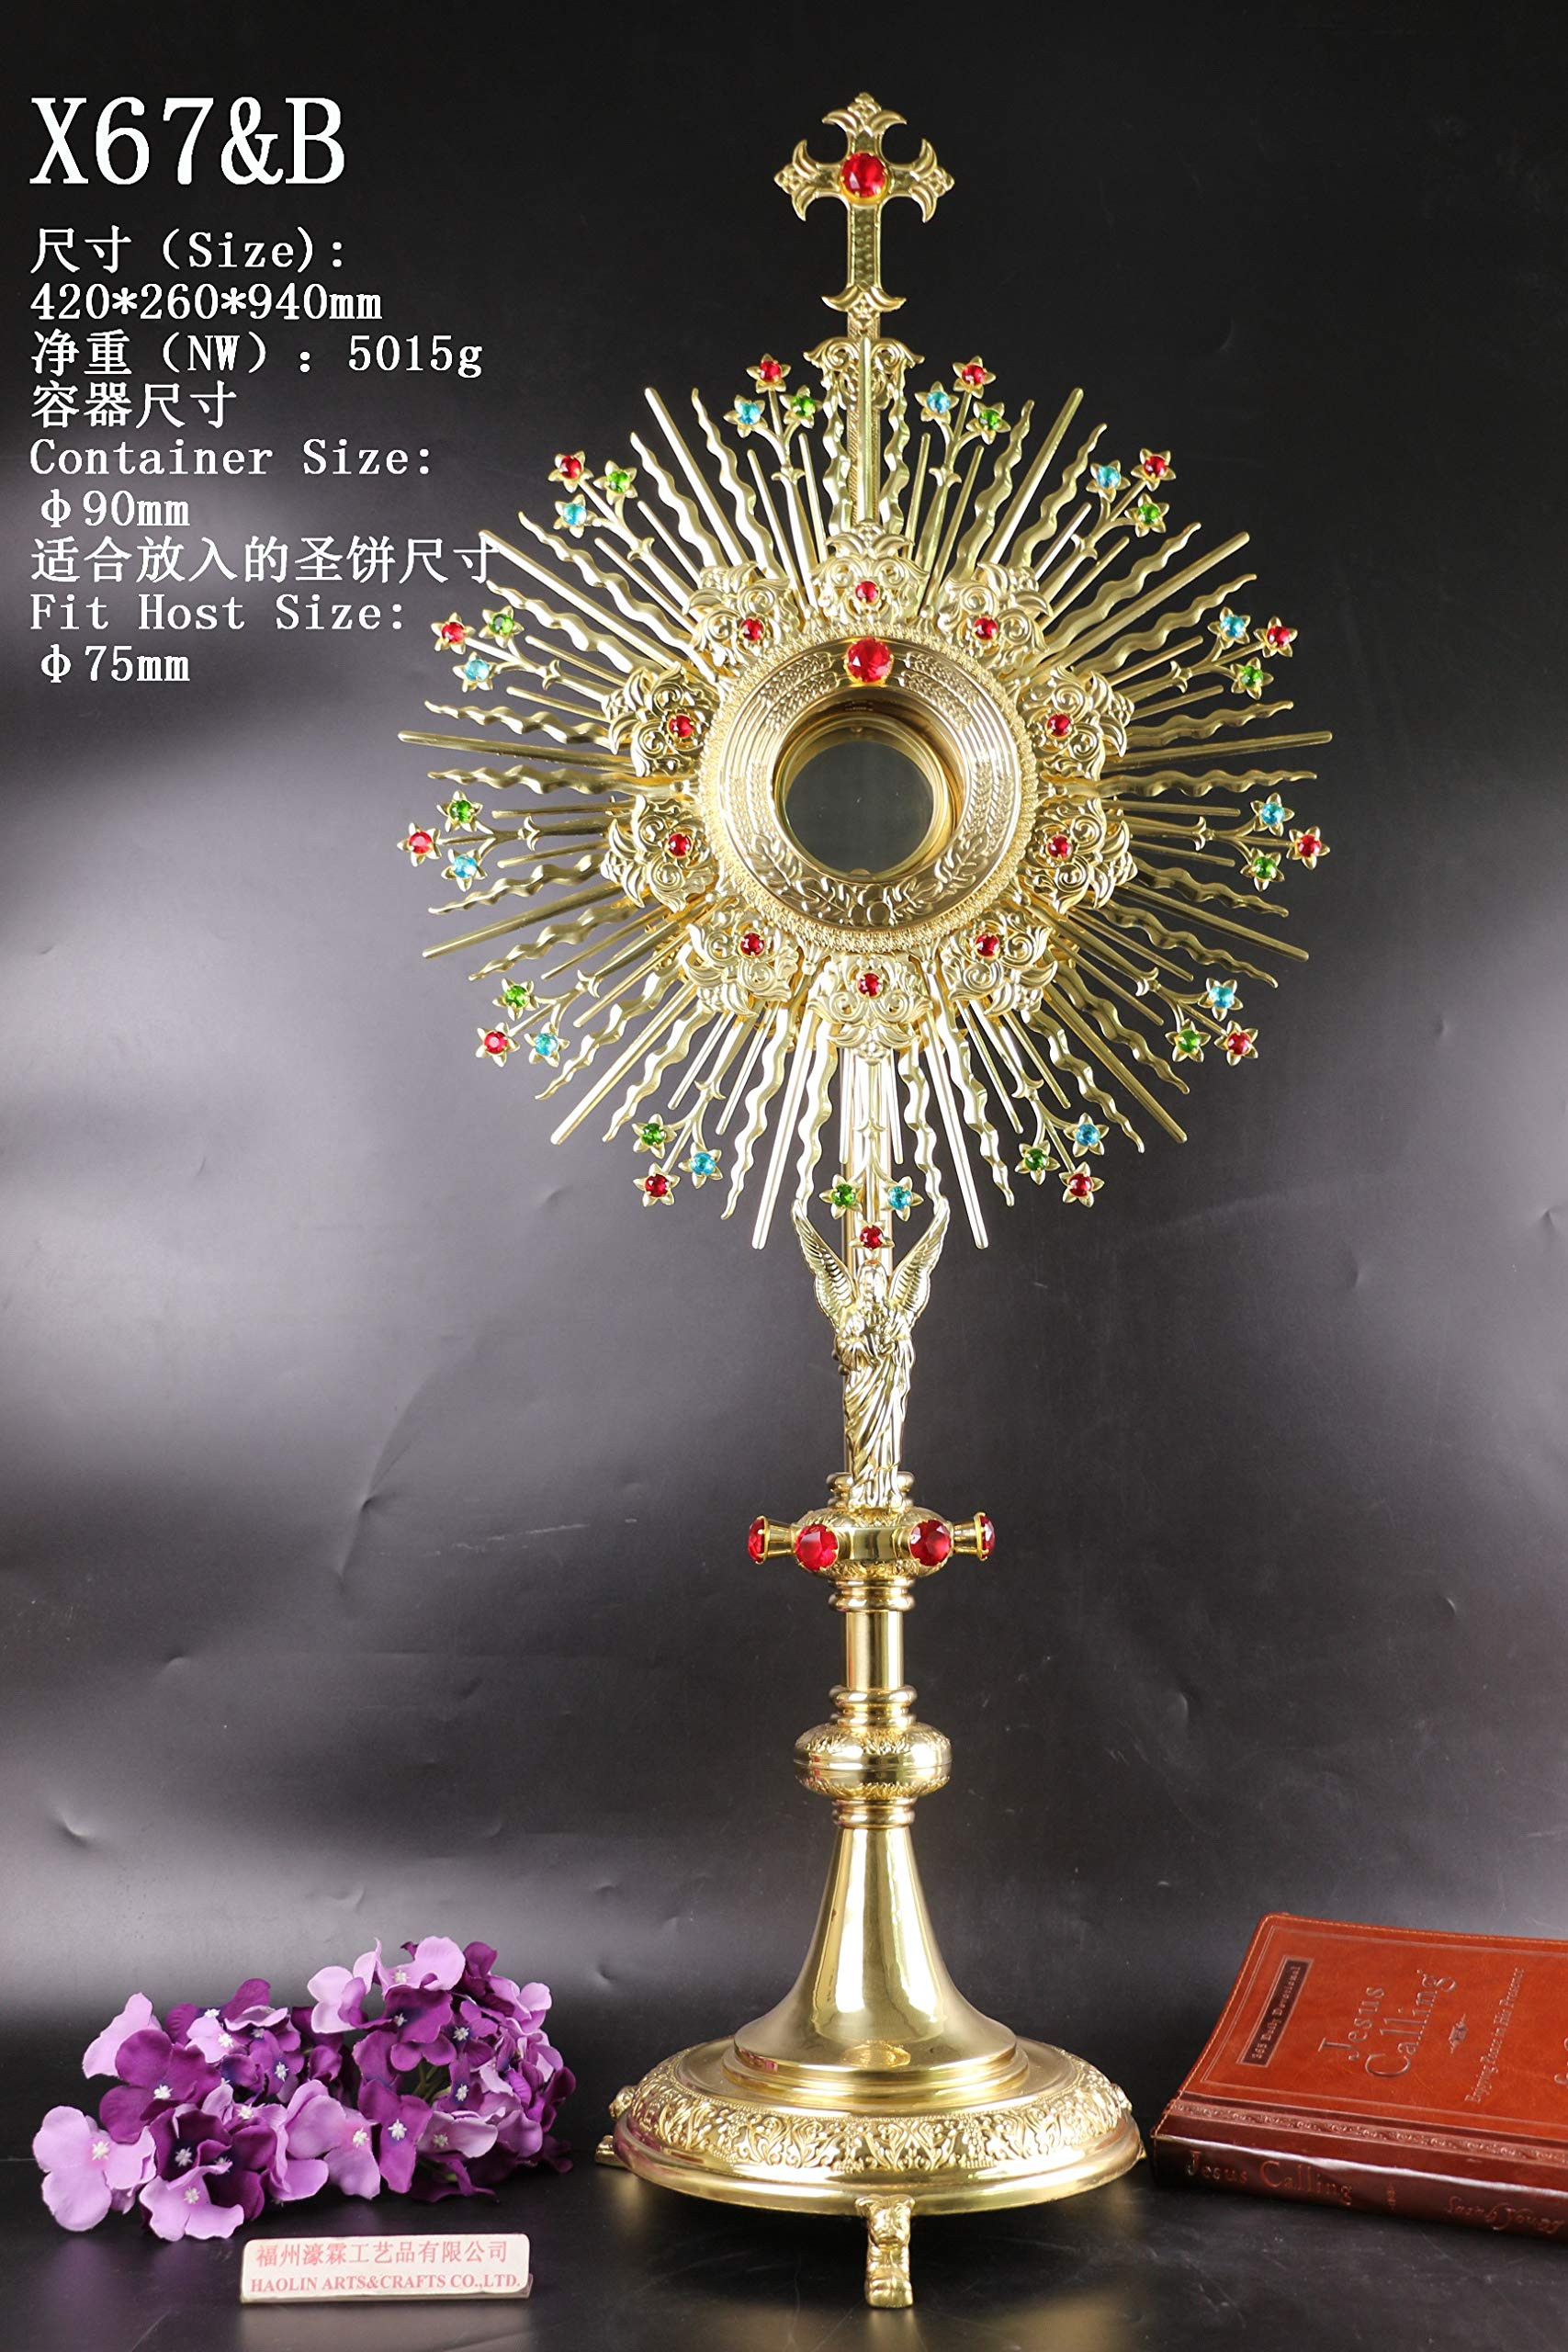 Rare Fine Large Monstrance with Lunette Beautiful and Affordable! 37'' High X67&B